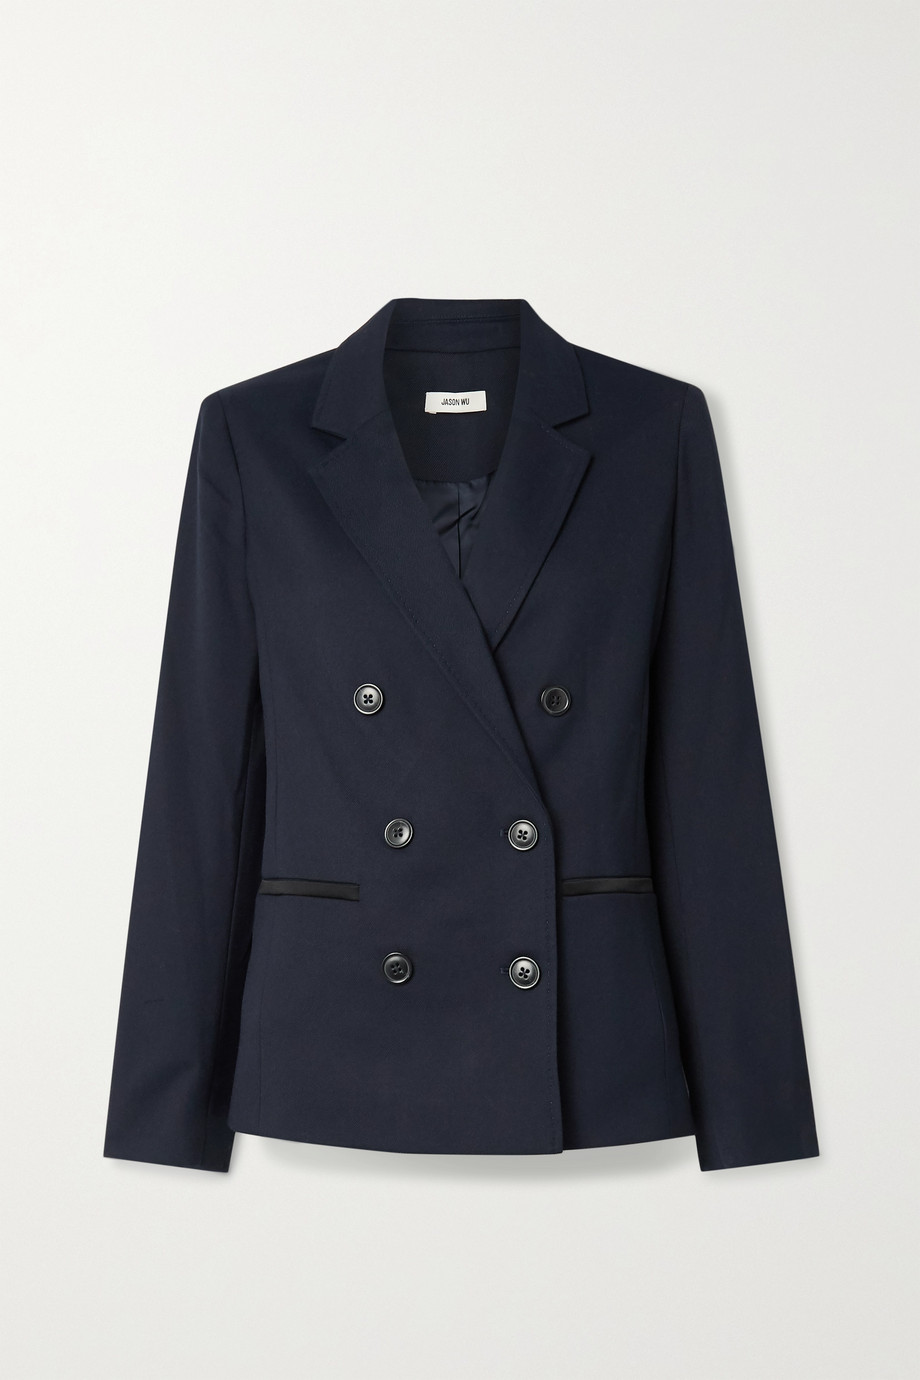 Jason Wu Double-breasted satin-trimmed twill blazer